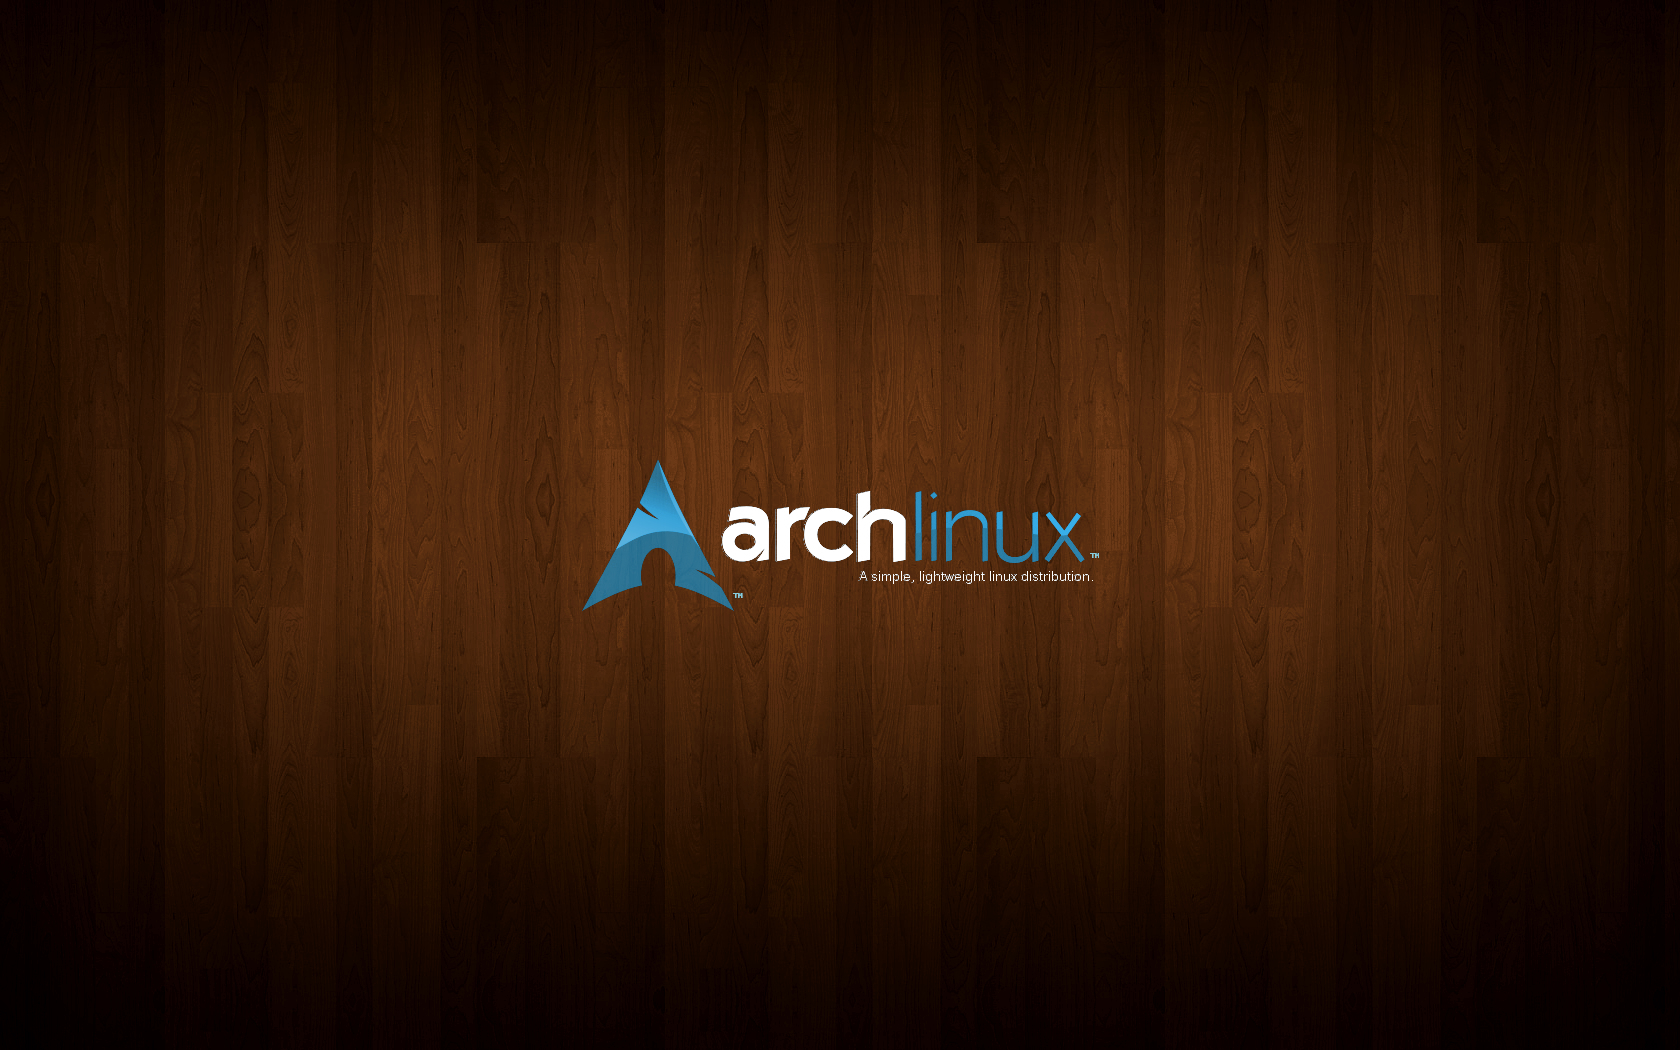 Linux arch computer HD Wallpaper